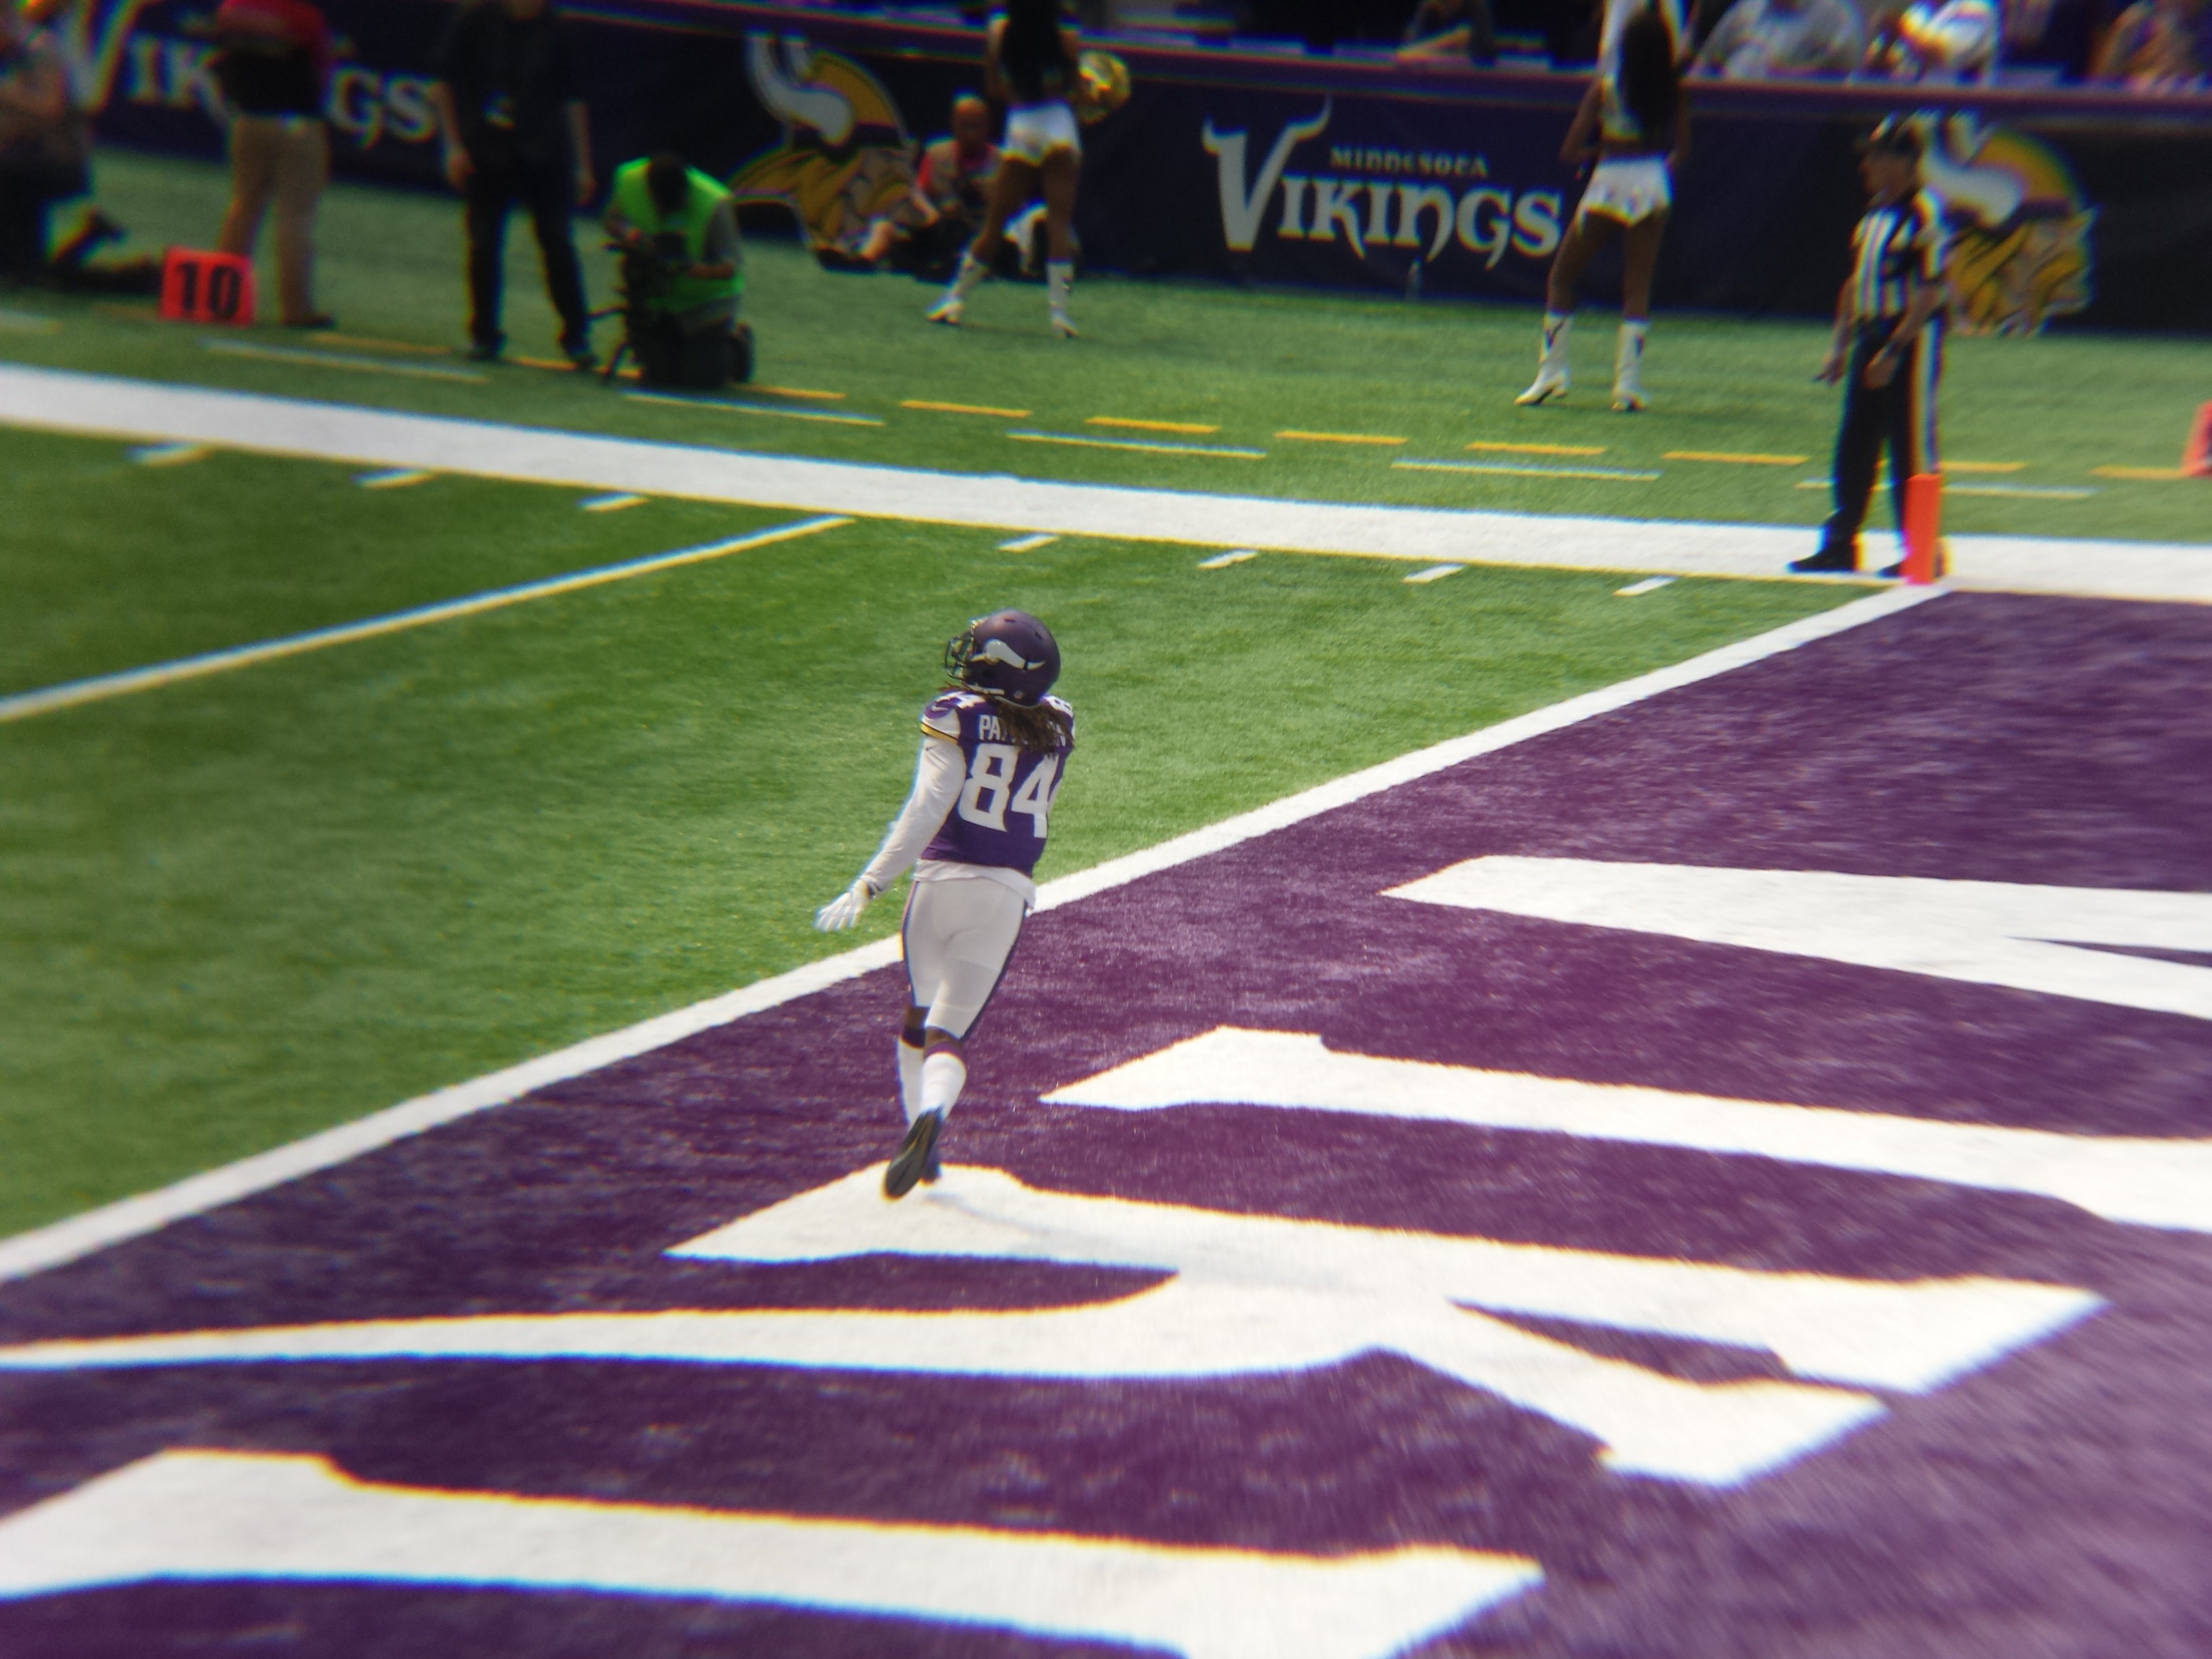 Minnesota Vikings U.S. Bank Stadium First Game - Cordarrelle Patterson